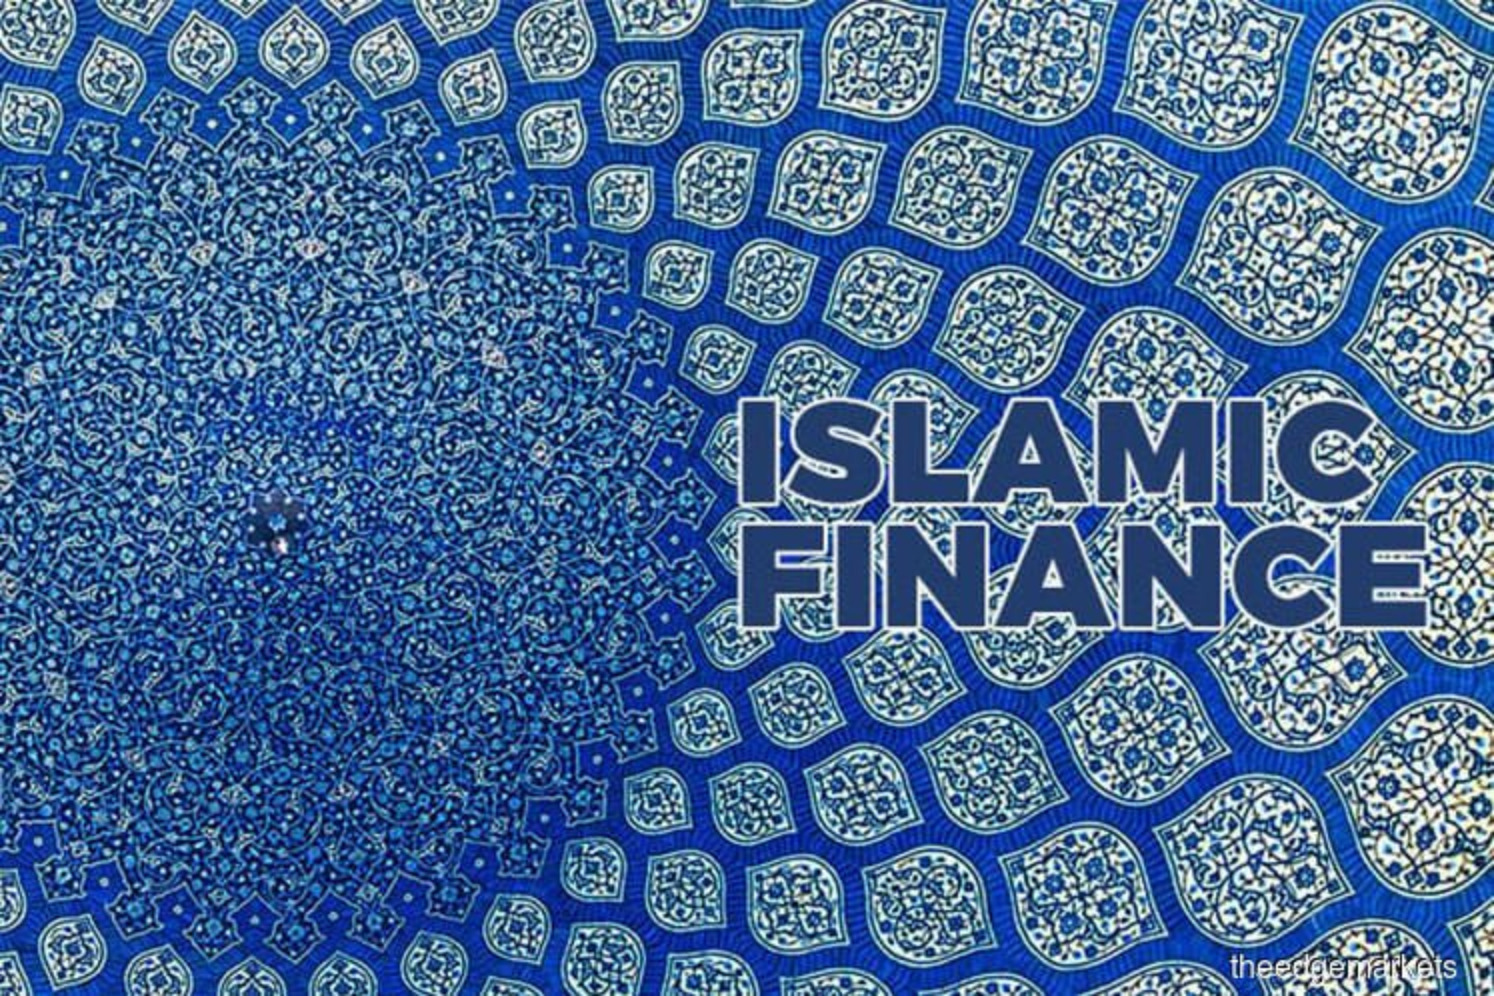 8e637-screenshot_2019-09-02-islamic-finance-is-alive-and-kicking-in-malaysia-says-bnm-governor